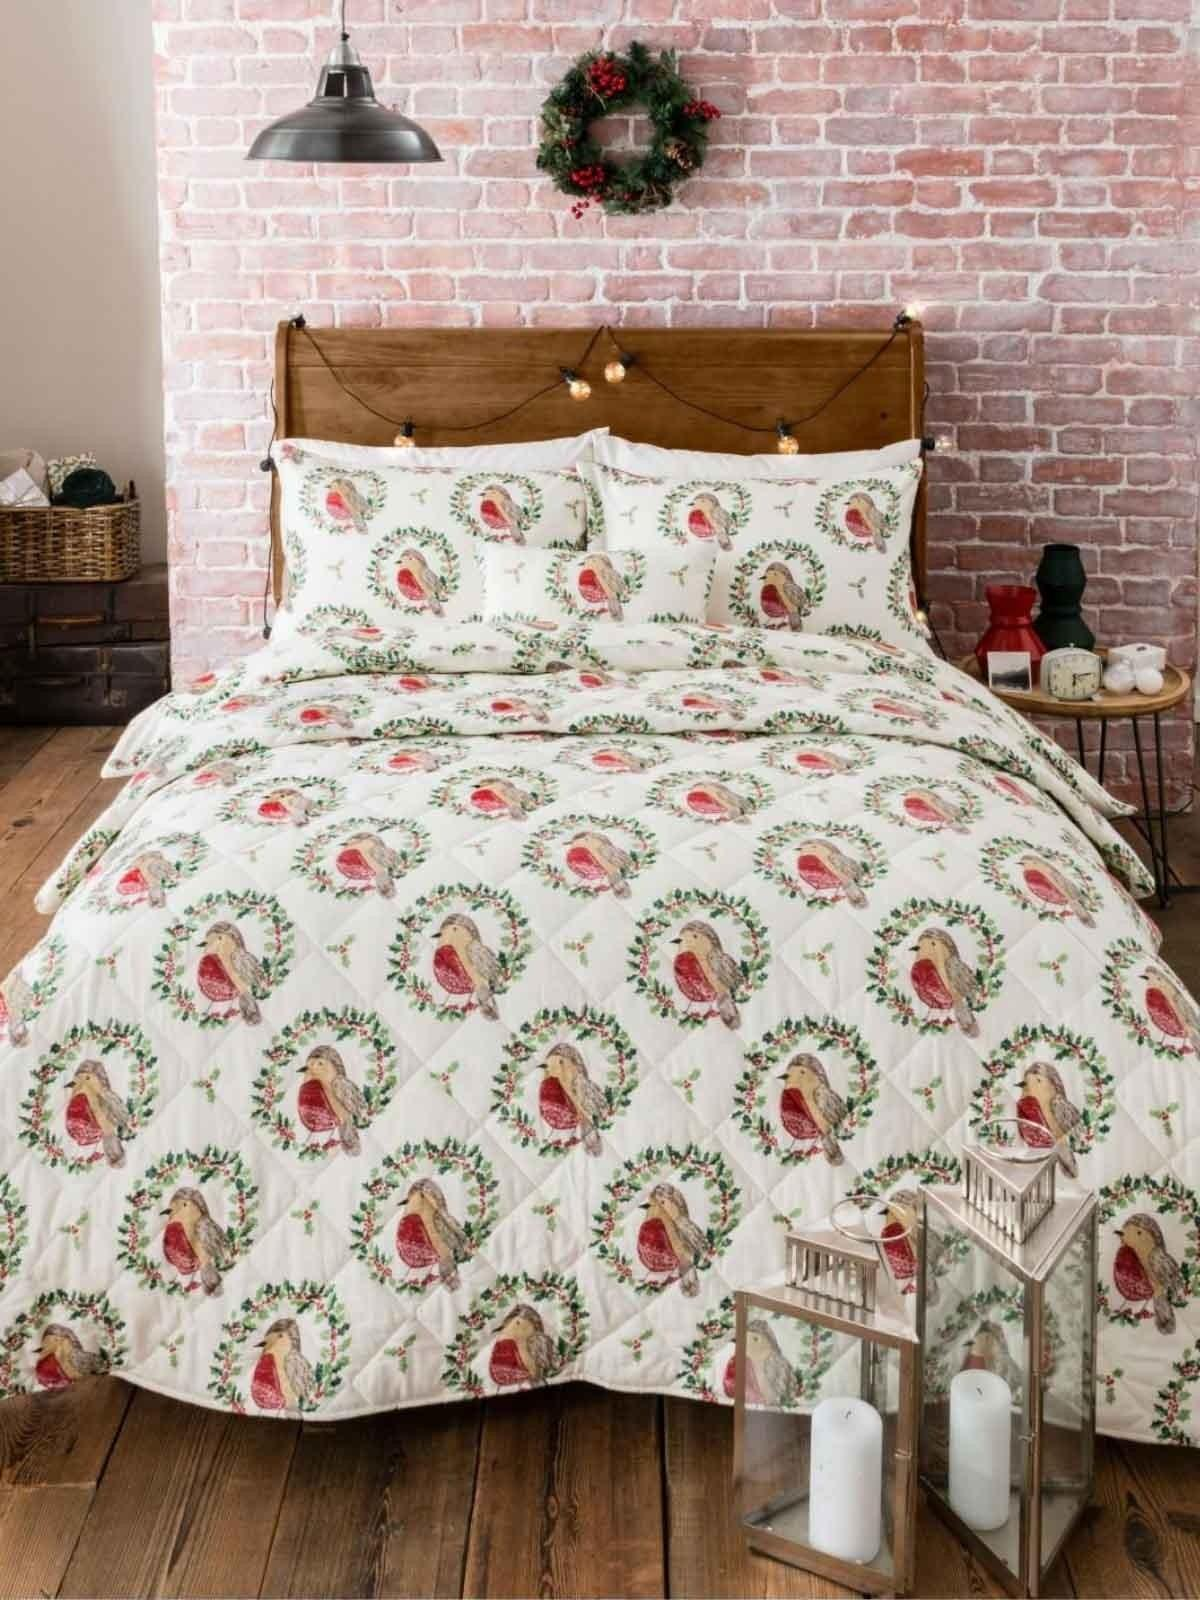 Robin Wreath Flannelette Bedding Collection Red Ponden Home